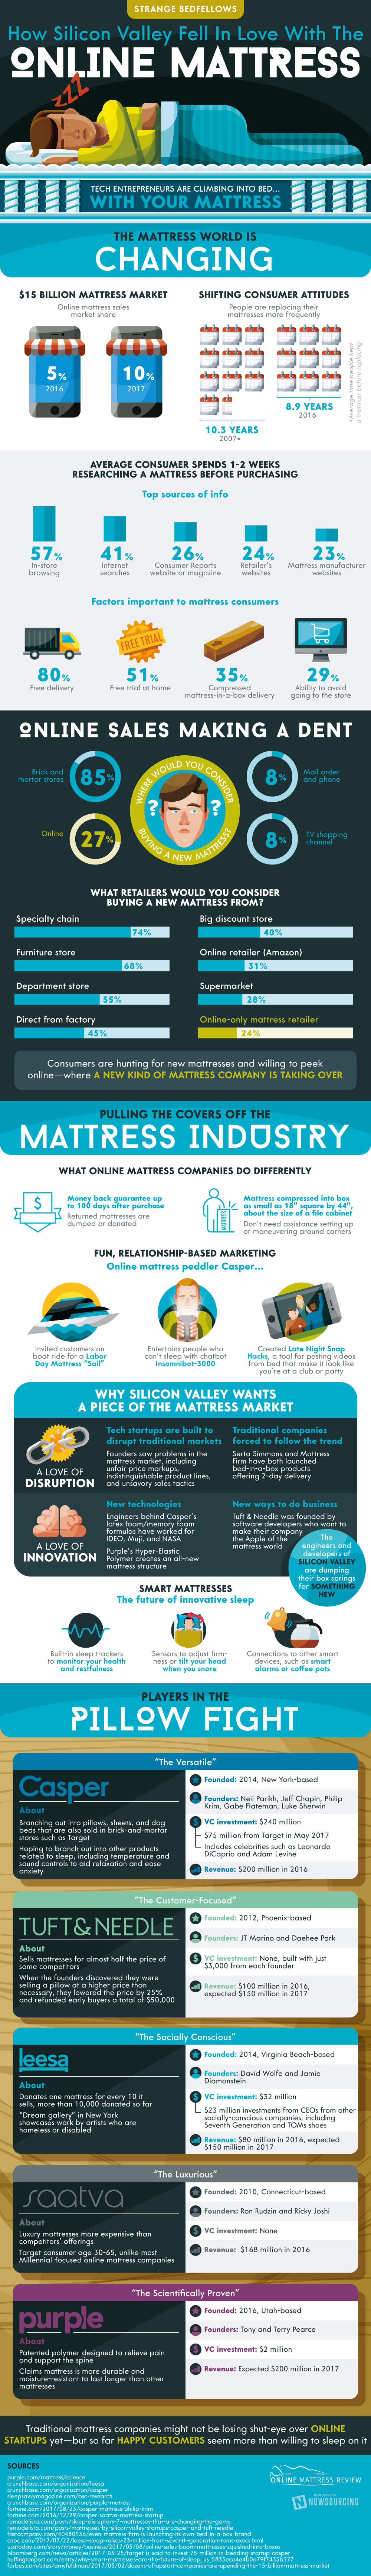 blog companies of lifestyle pany lessa online awesome mattress